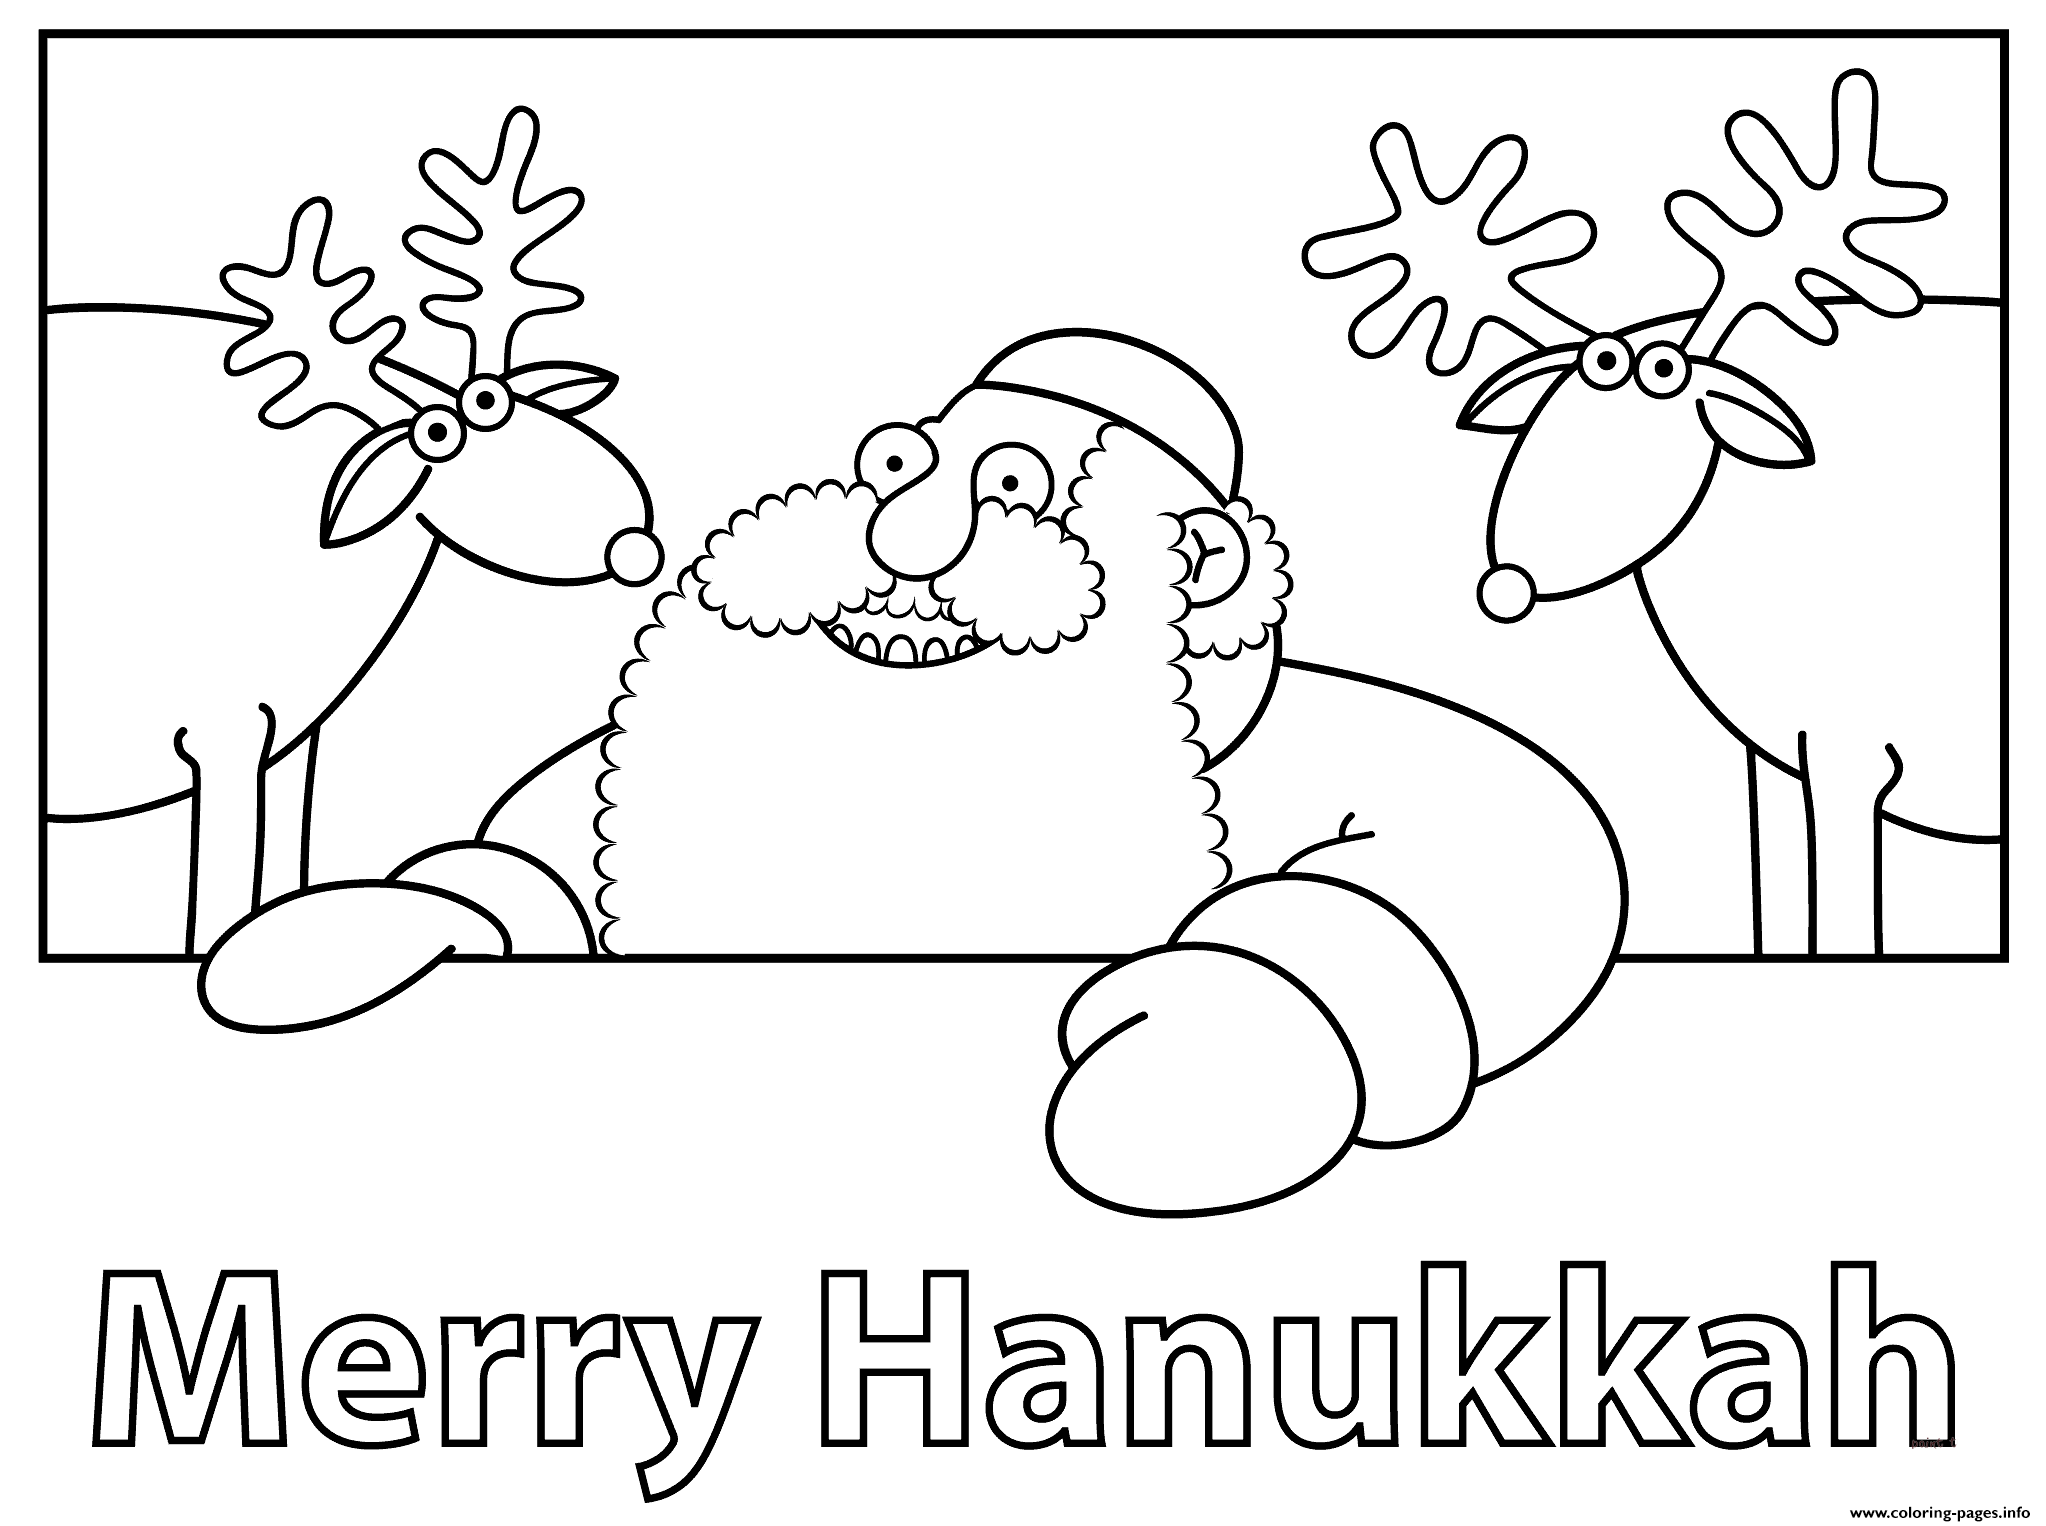 Merry Hanukkah Coloring Pages Printable